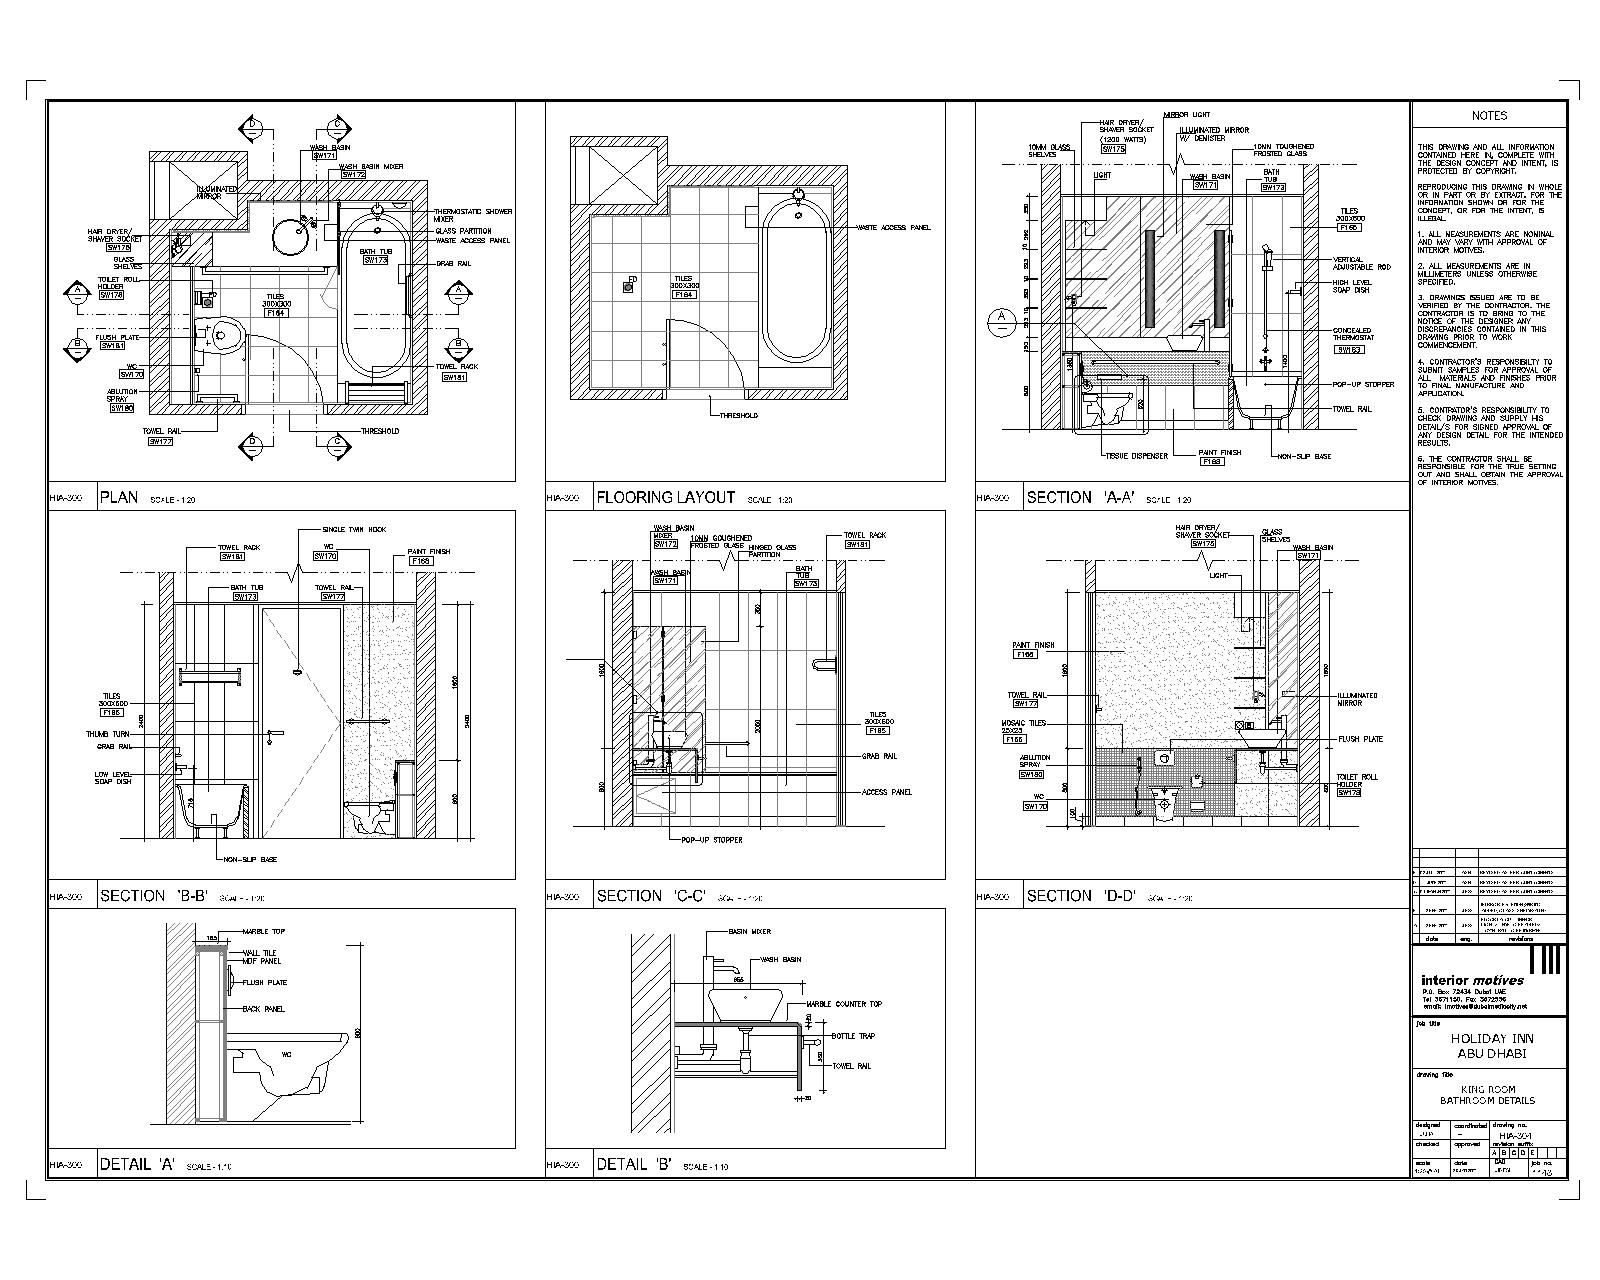 Bathroom section drawing - Autocad Drawings Detail By Ashik Ahammed At Coroflot